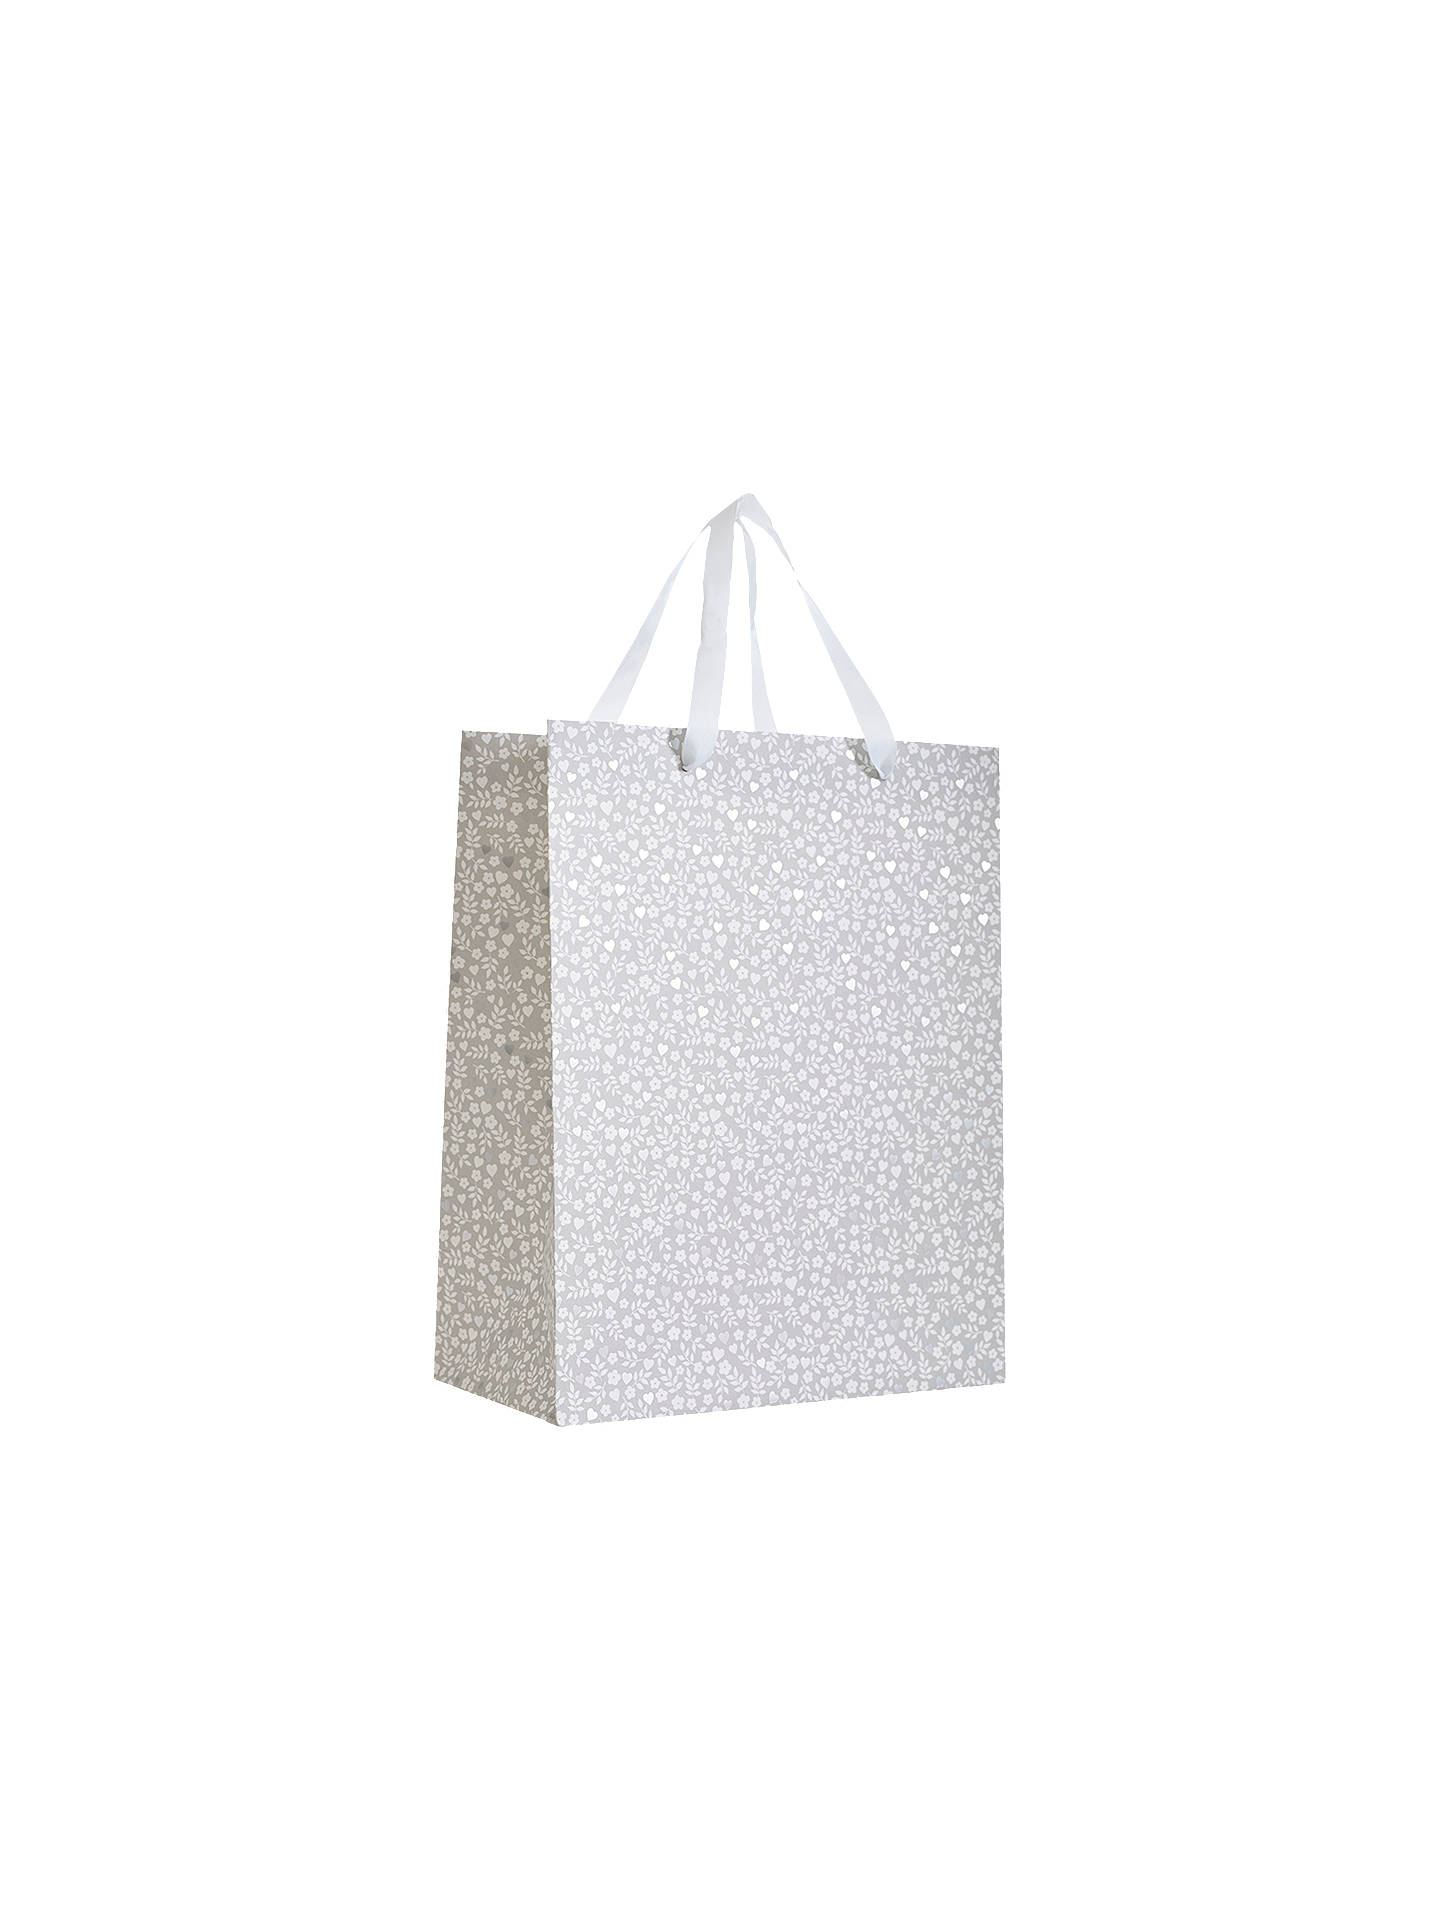 BuyJohn Lewis & Partners Ditsy Wedding Gift Bag, Medium Online at johnlewis.com